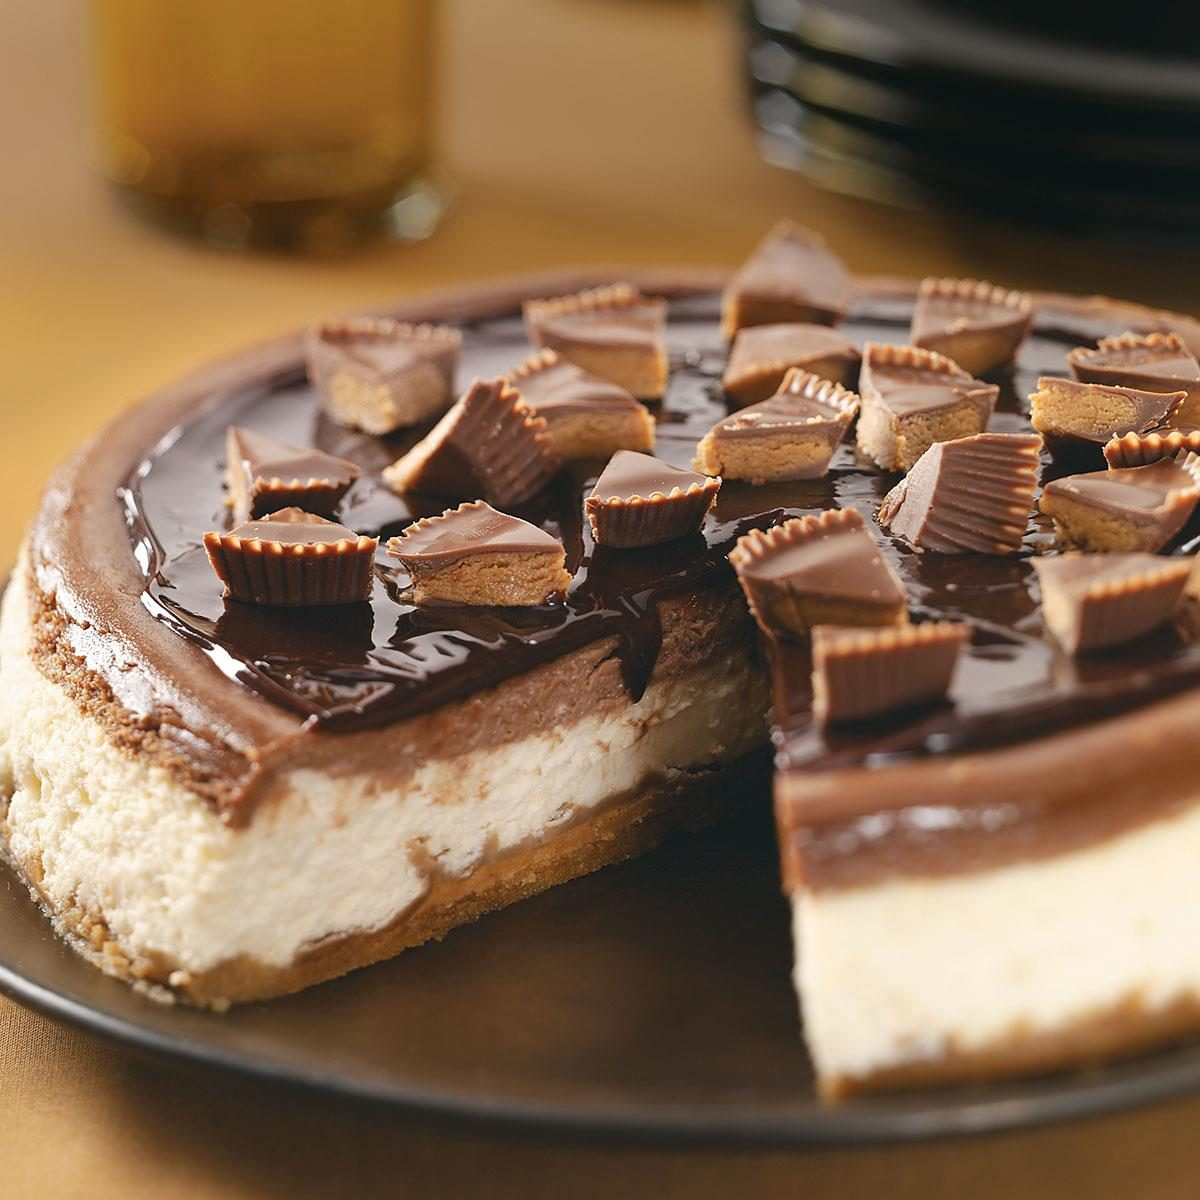 Makeover Peanut Butter Cup Cheesecake on a platter.